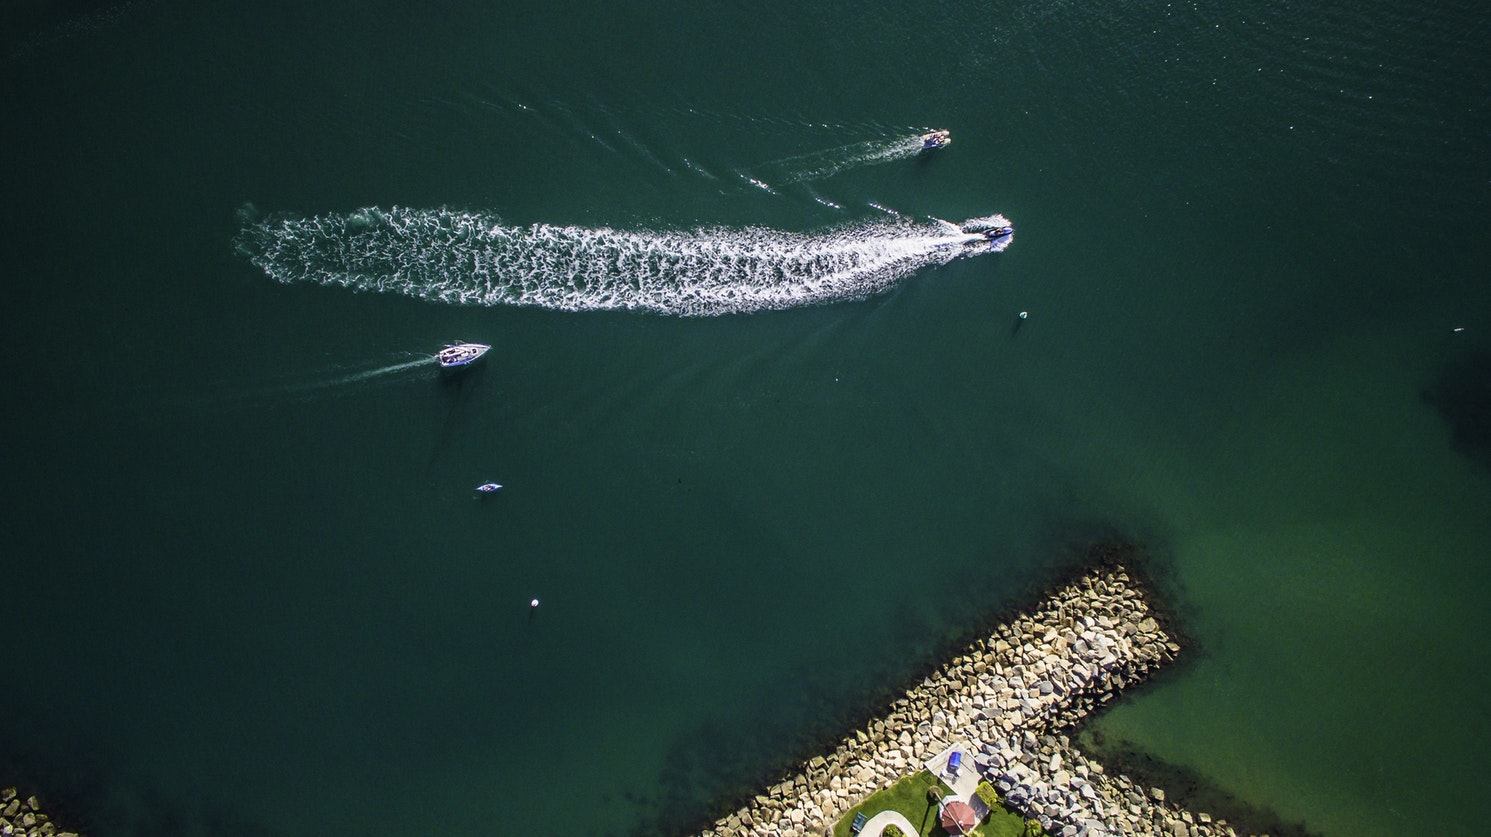 Aerial view of powerboats and personal  watercraft (PWC) on aqua-colored water.